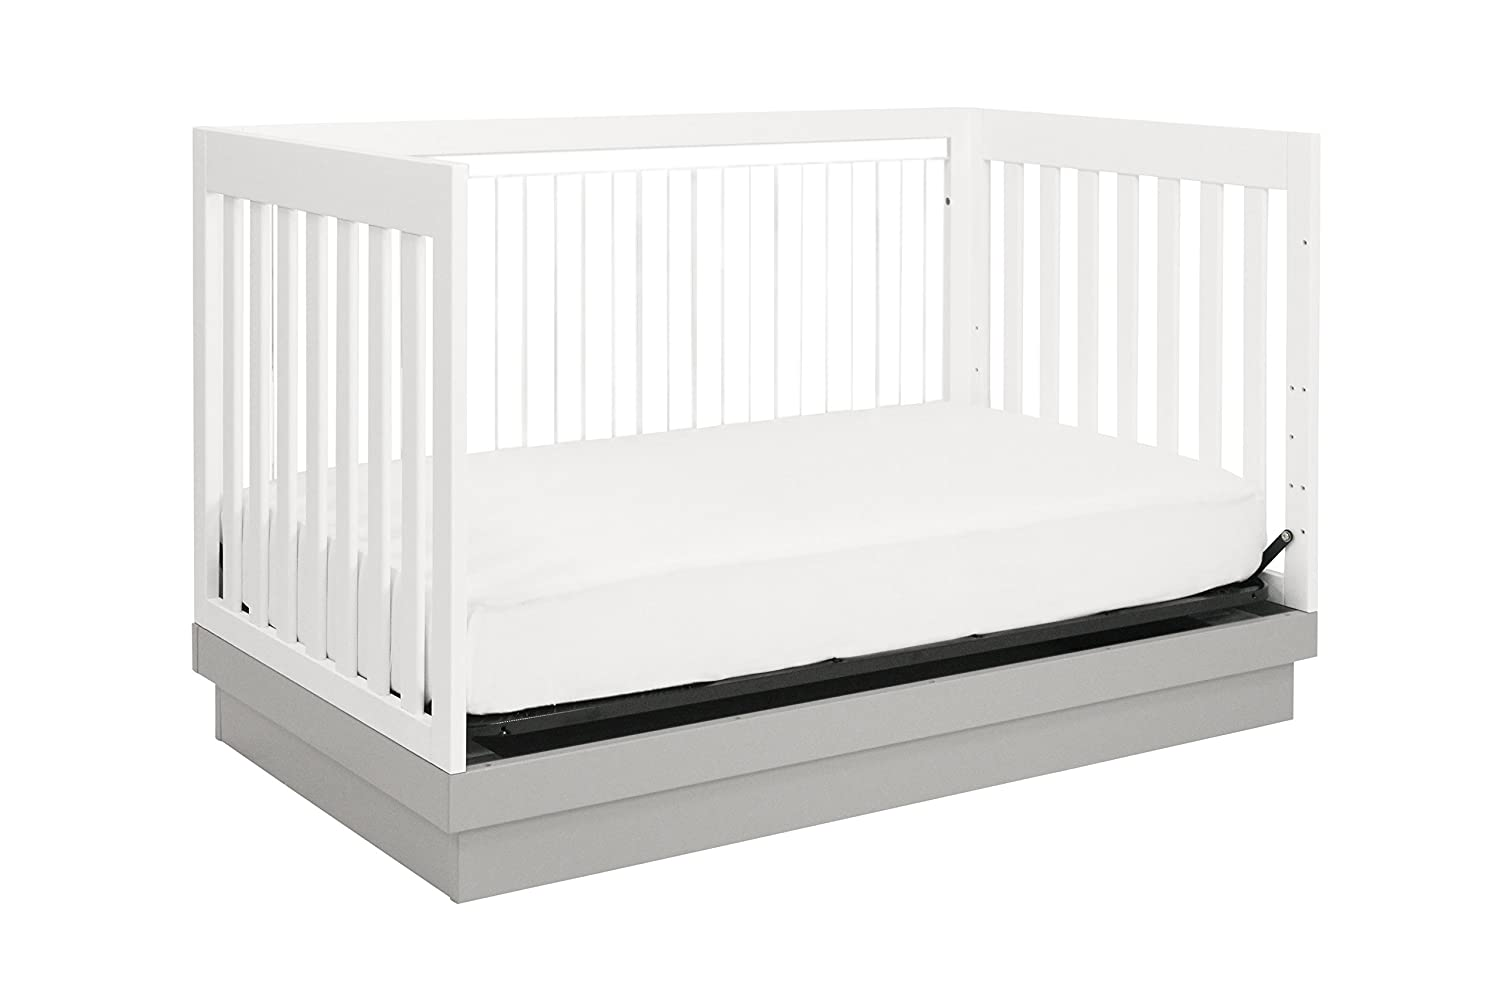 amazoncom  babyletto harlow in convertible crib white with greyacrylic  babyletto lucite  baby. amazoncom  babyletto harlow in convertible crib white with